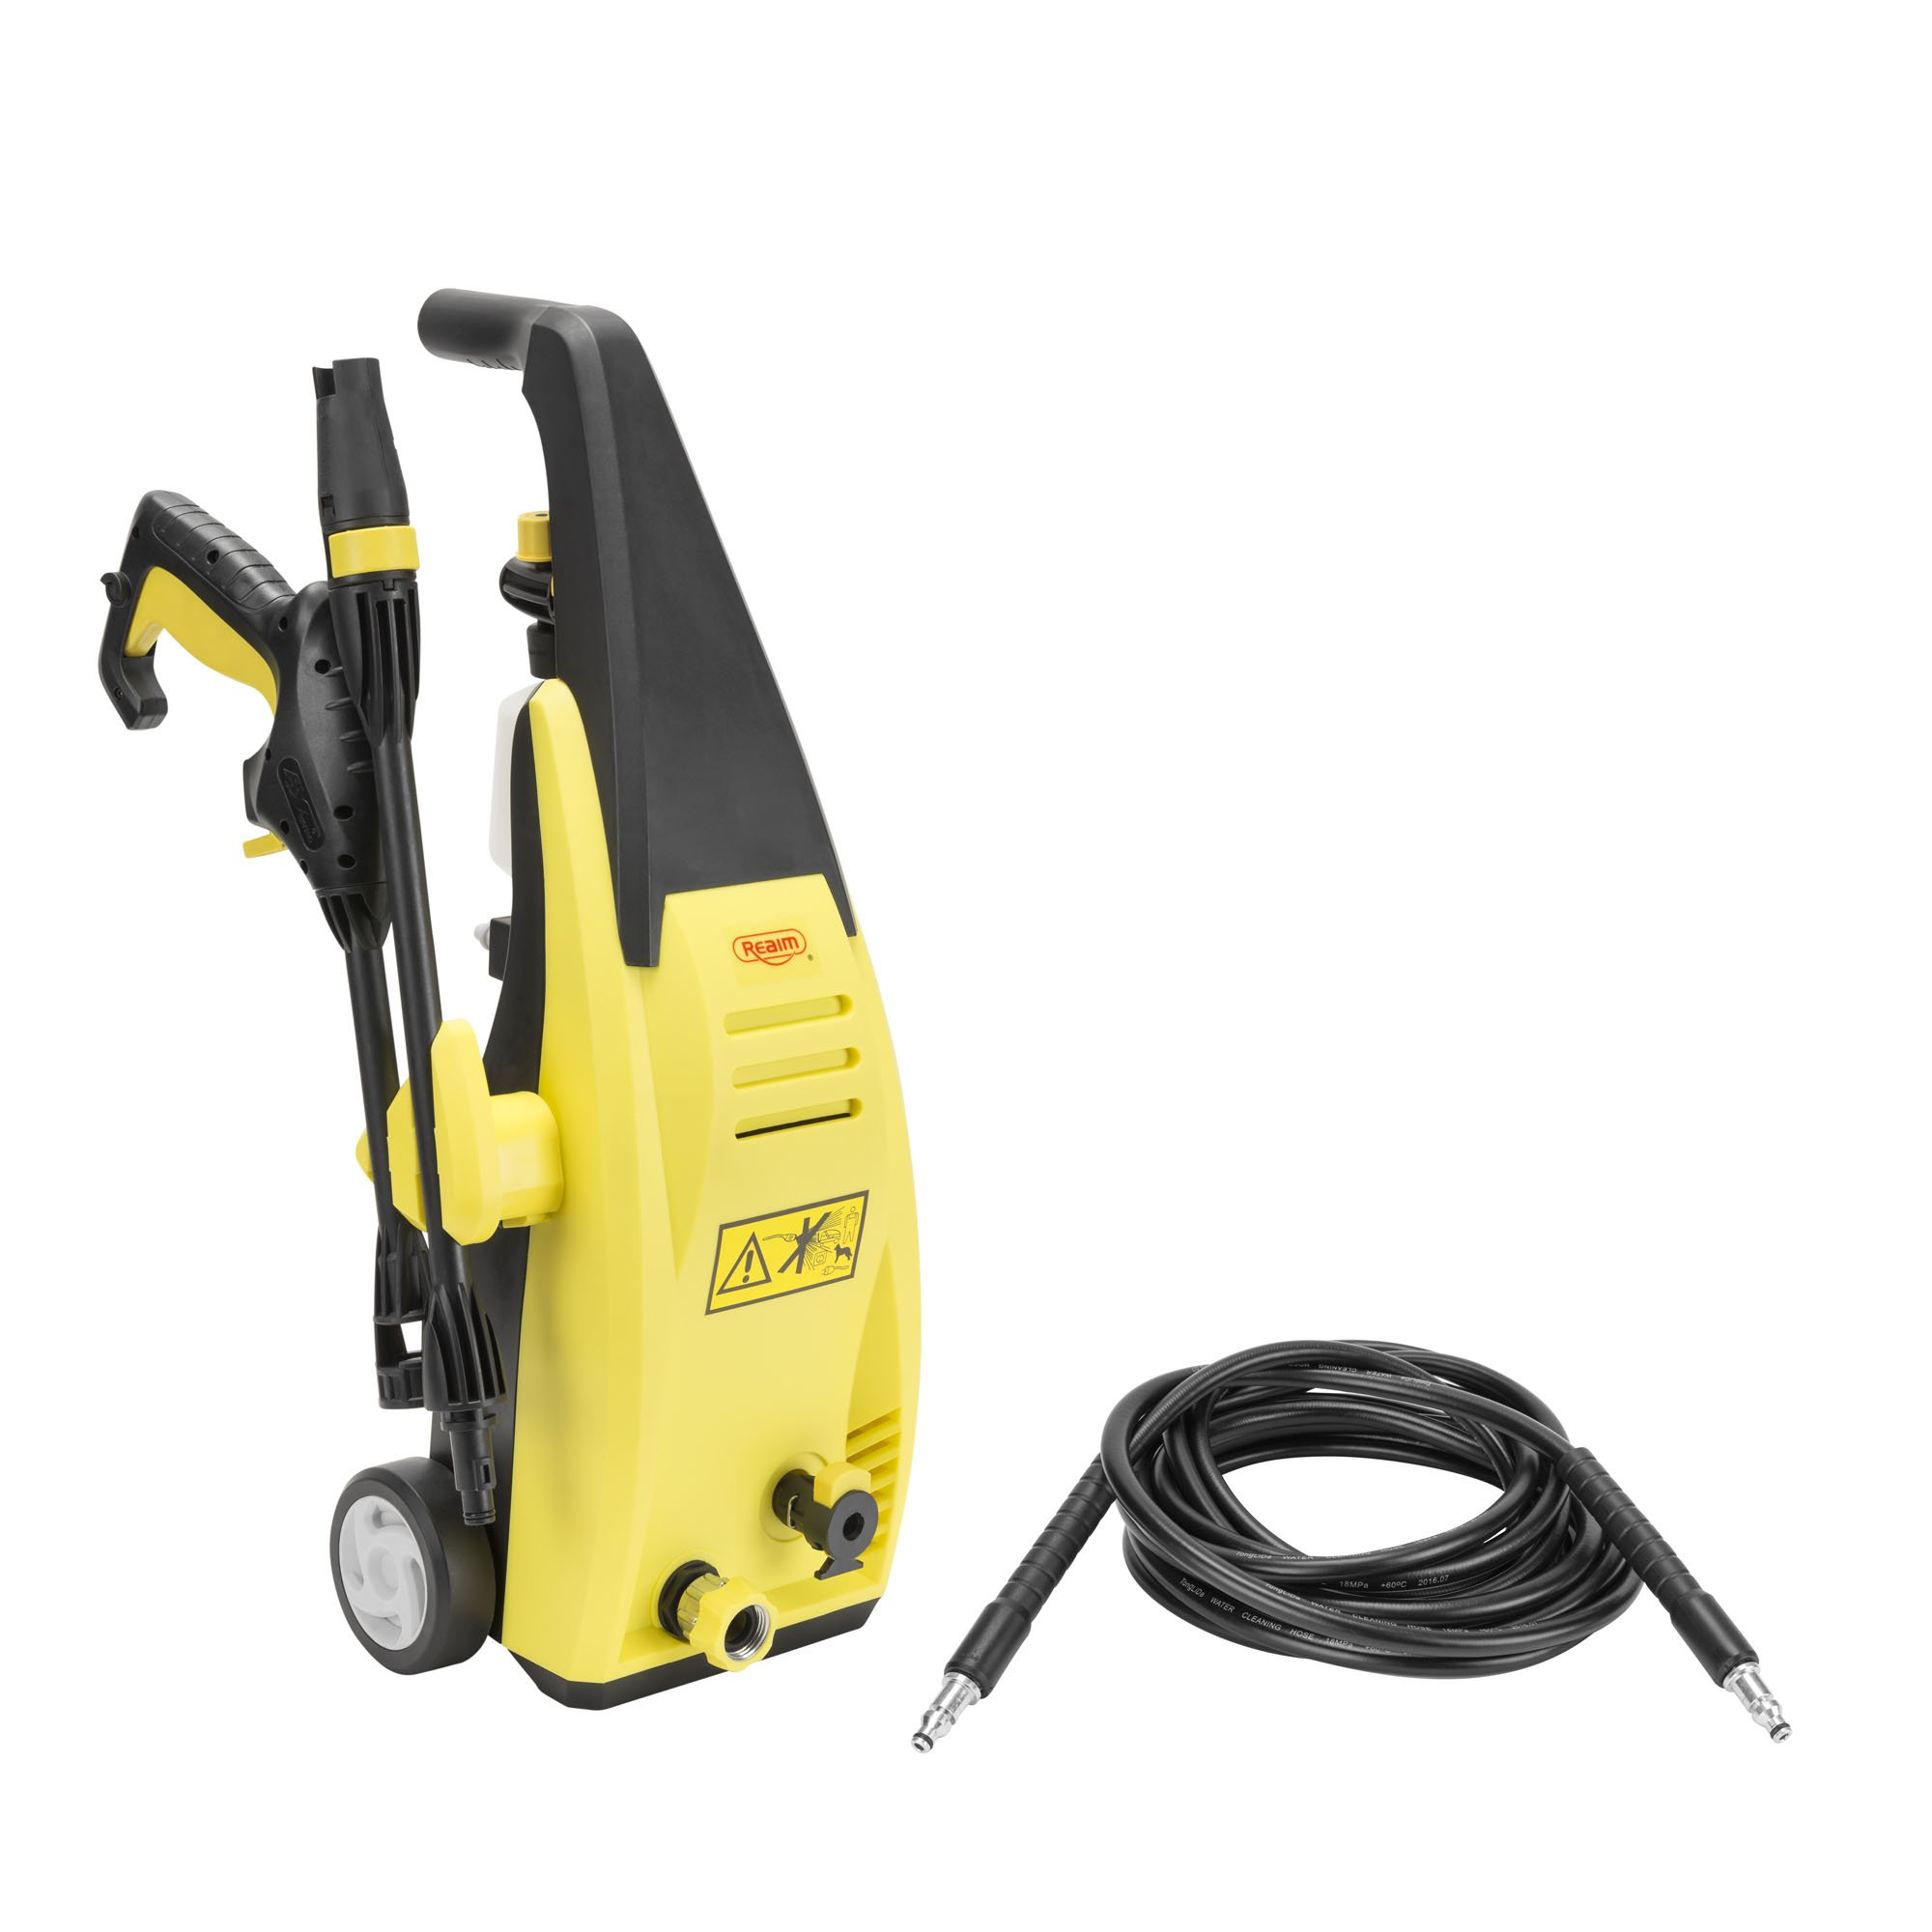 Realm  BY01-Vbj-Wt 1500 Psi 1.60 GPM 13 AMP Electric Pressure Washer